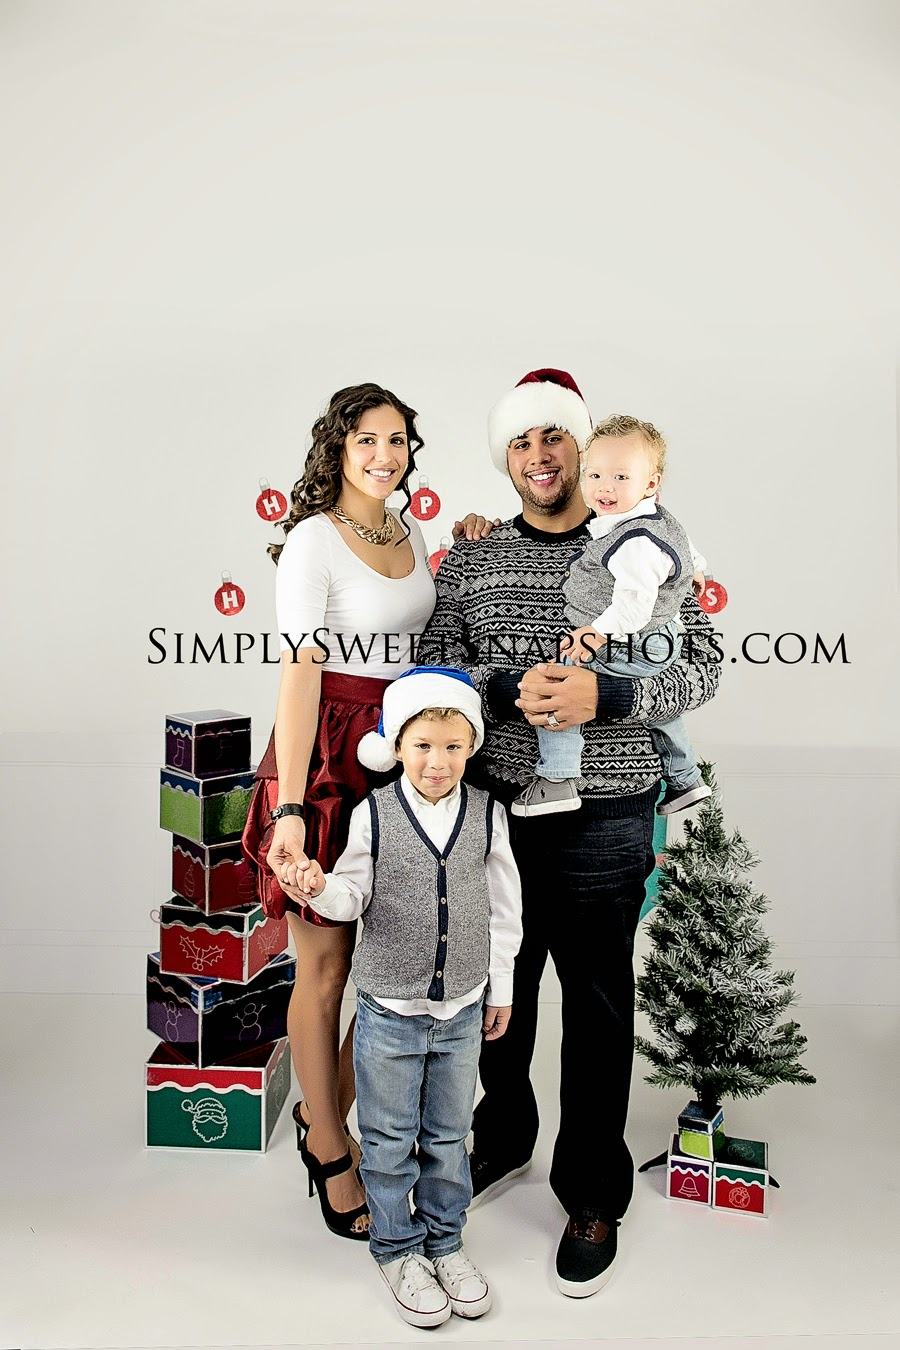 How Precious Is This Family They Wanted Their Very Own Full Holiday Shoot And Had Some Cute Ideas Great Outfit Combinations Also